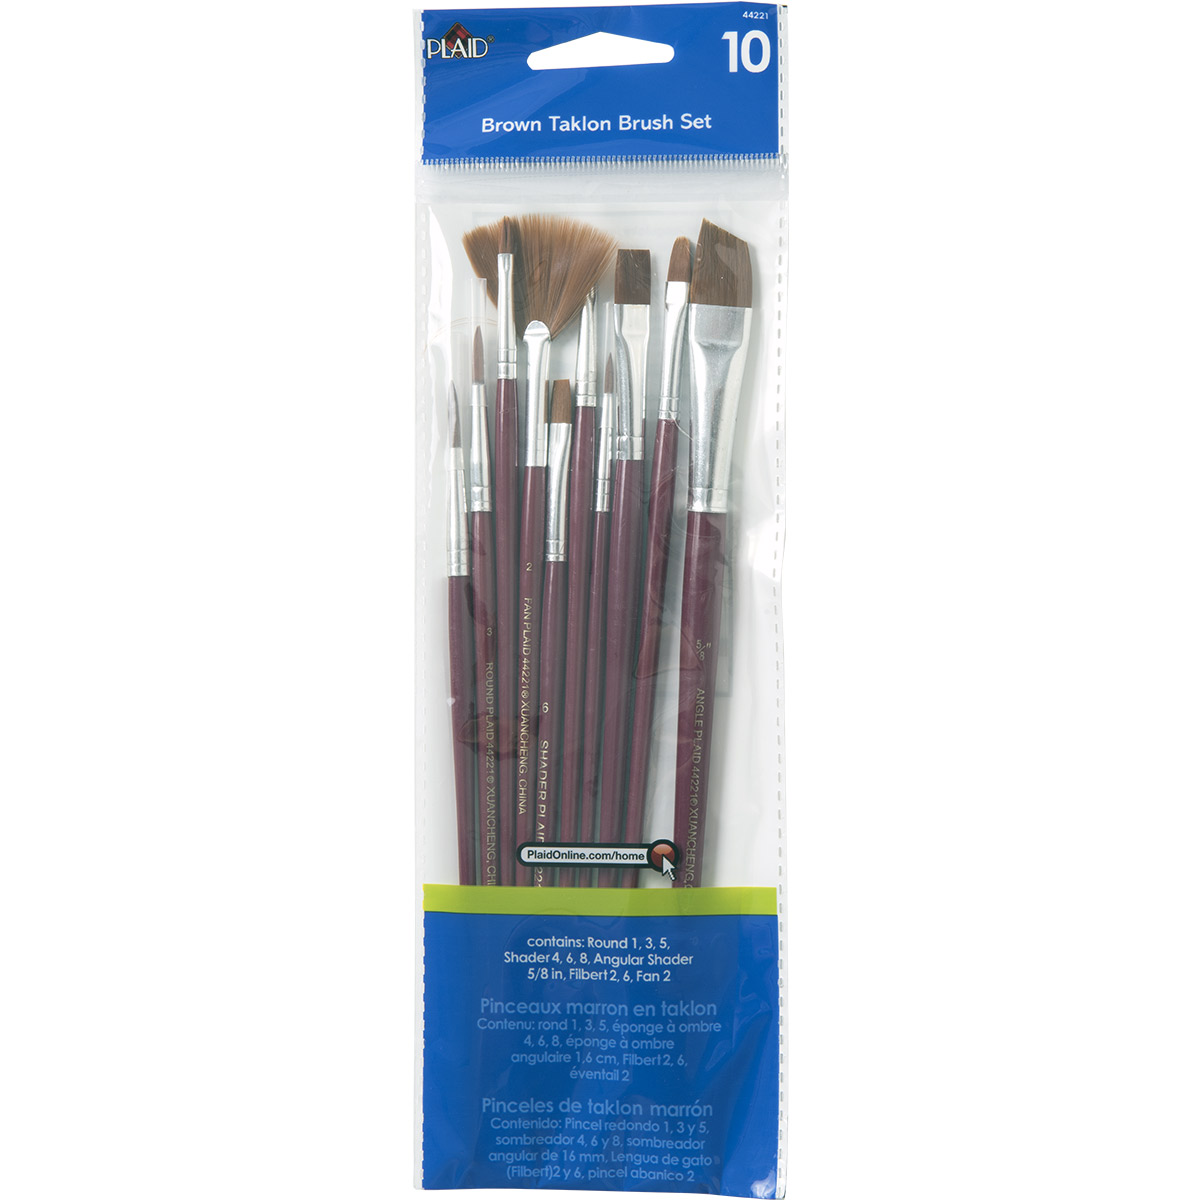 Plaid ® Brush Sets - Wood Brush Set, Brown Nylon - 44221